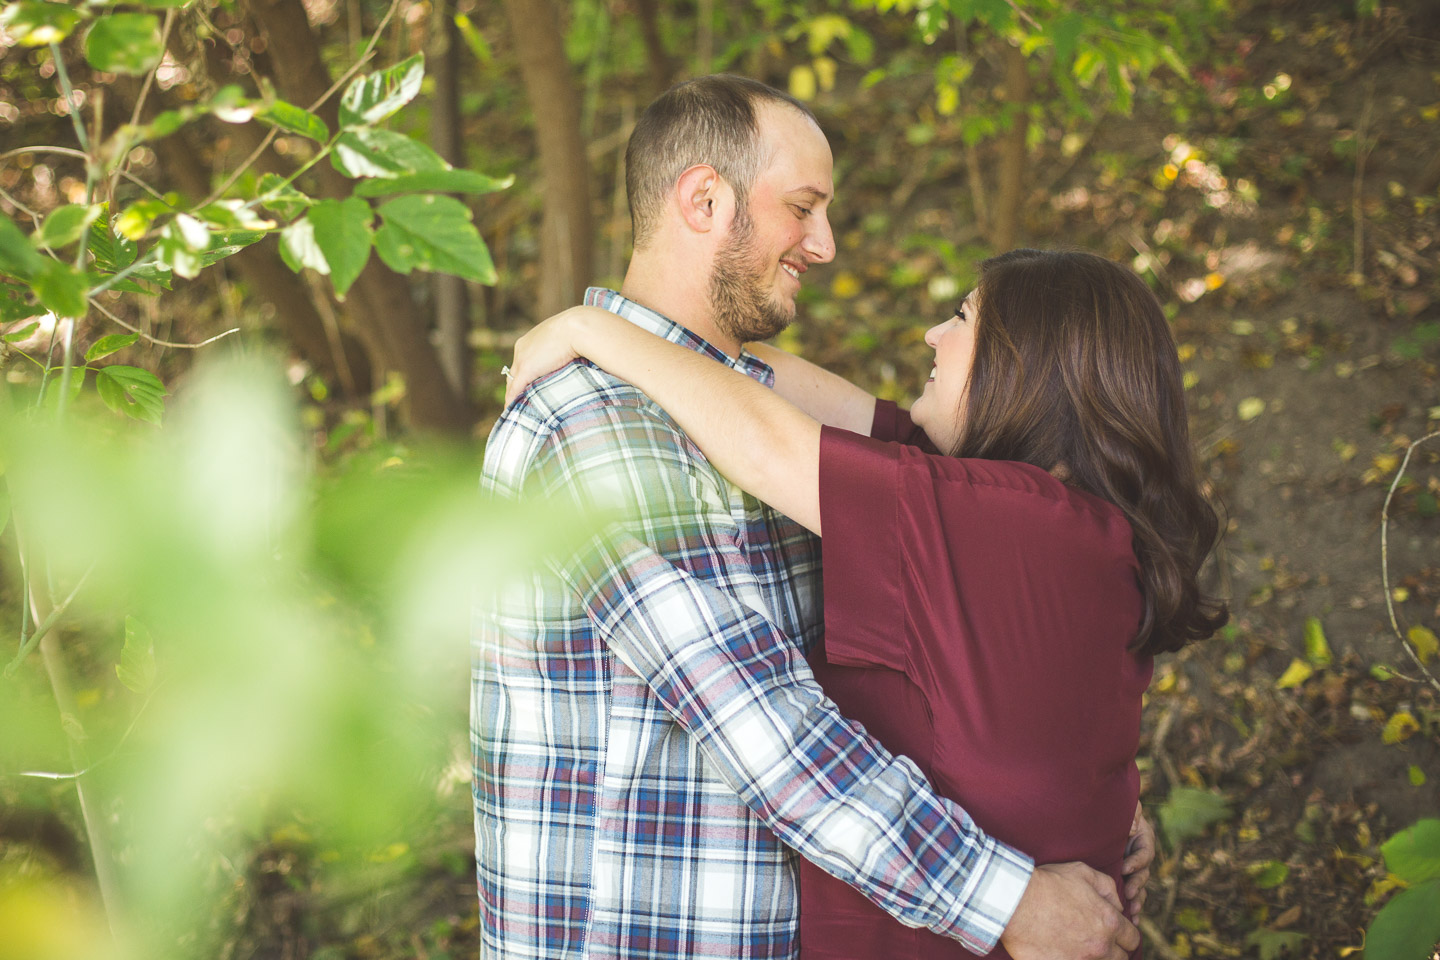 Engagement-Northville-Mill-Race-Village-David-Danielle-Shoot-Through-Leaves